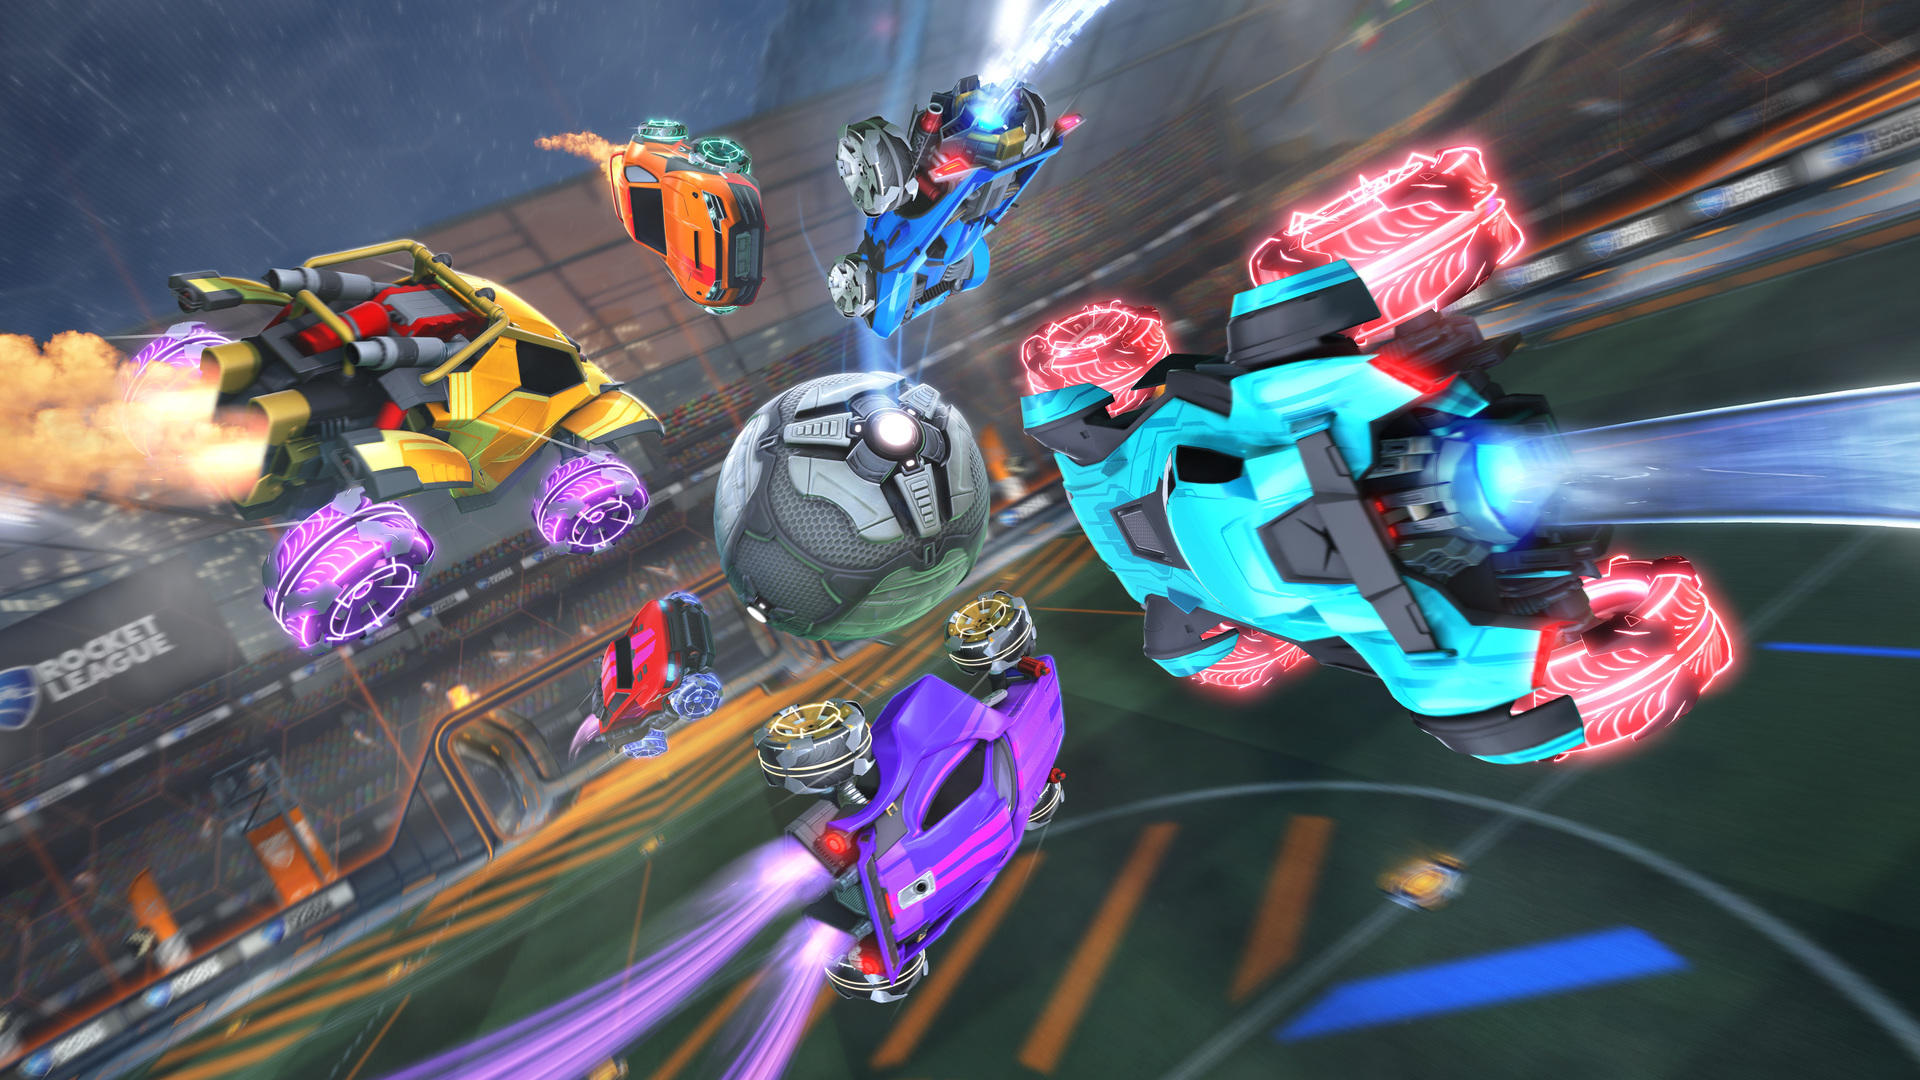 Rocket League sets new player record with nearly 500,000 players across all platforms